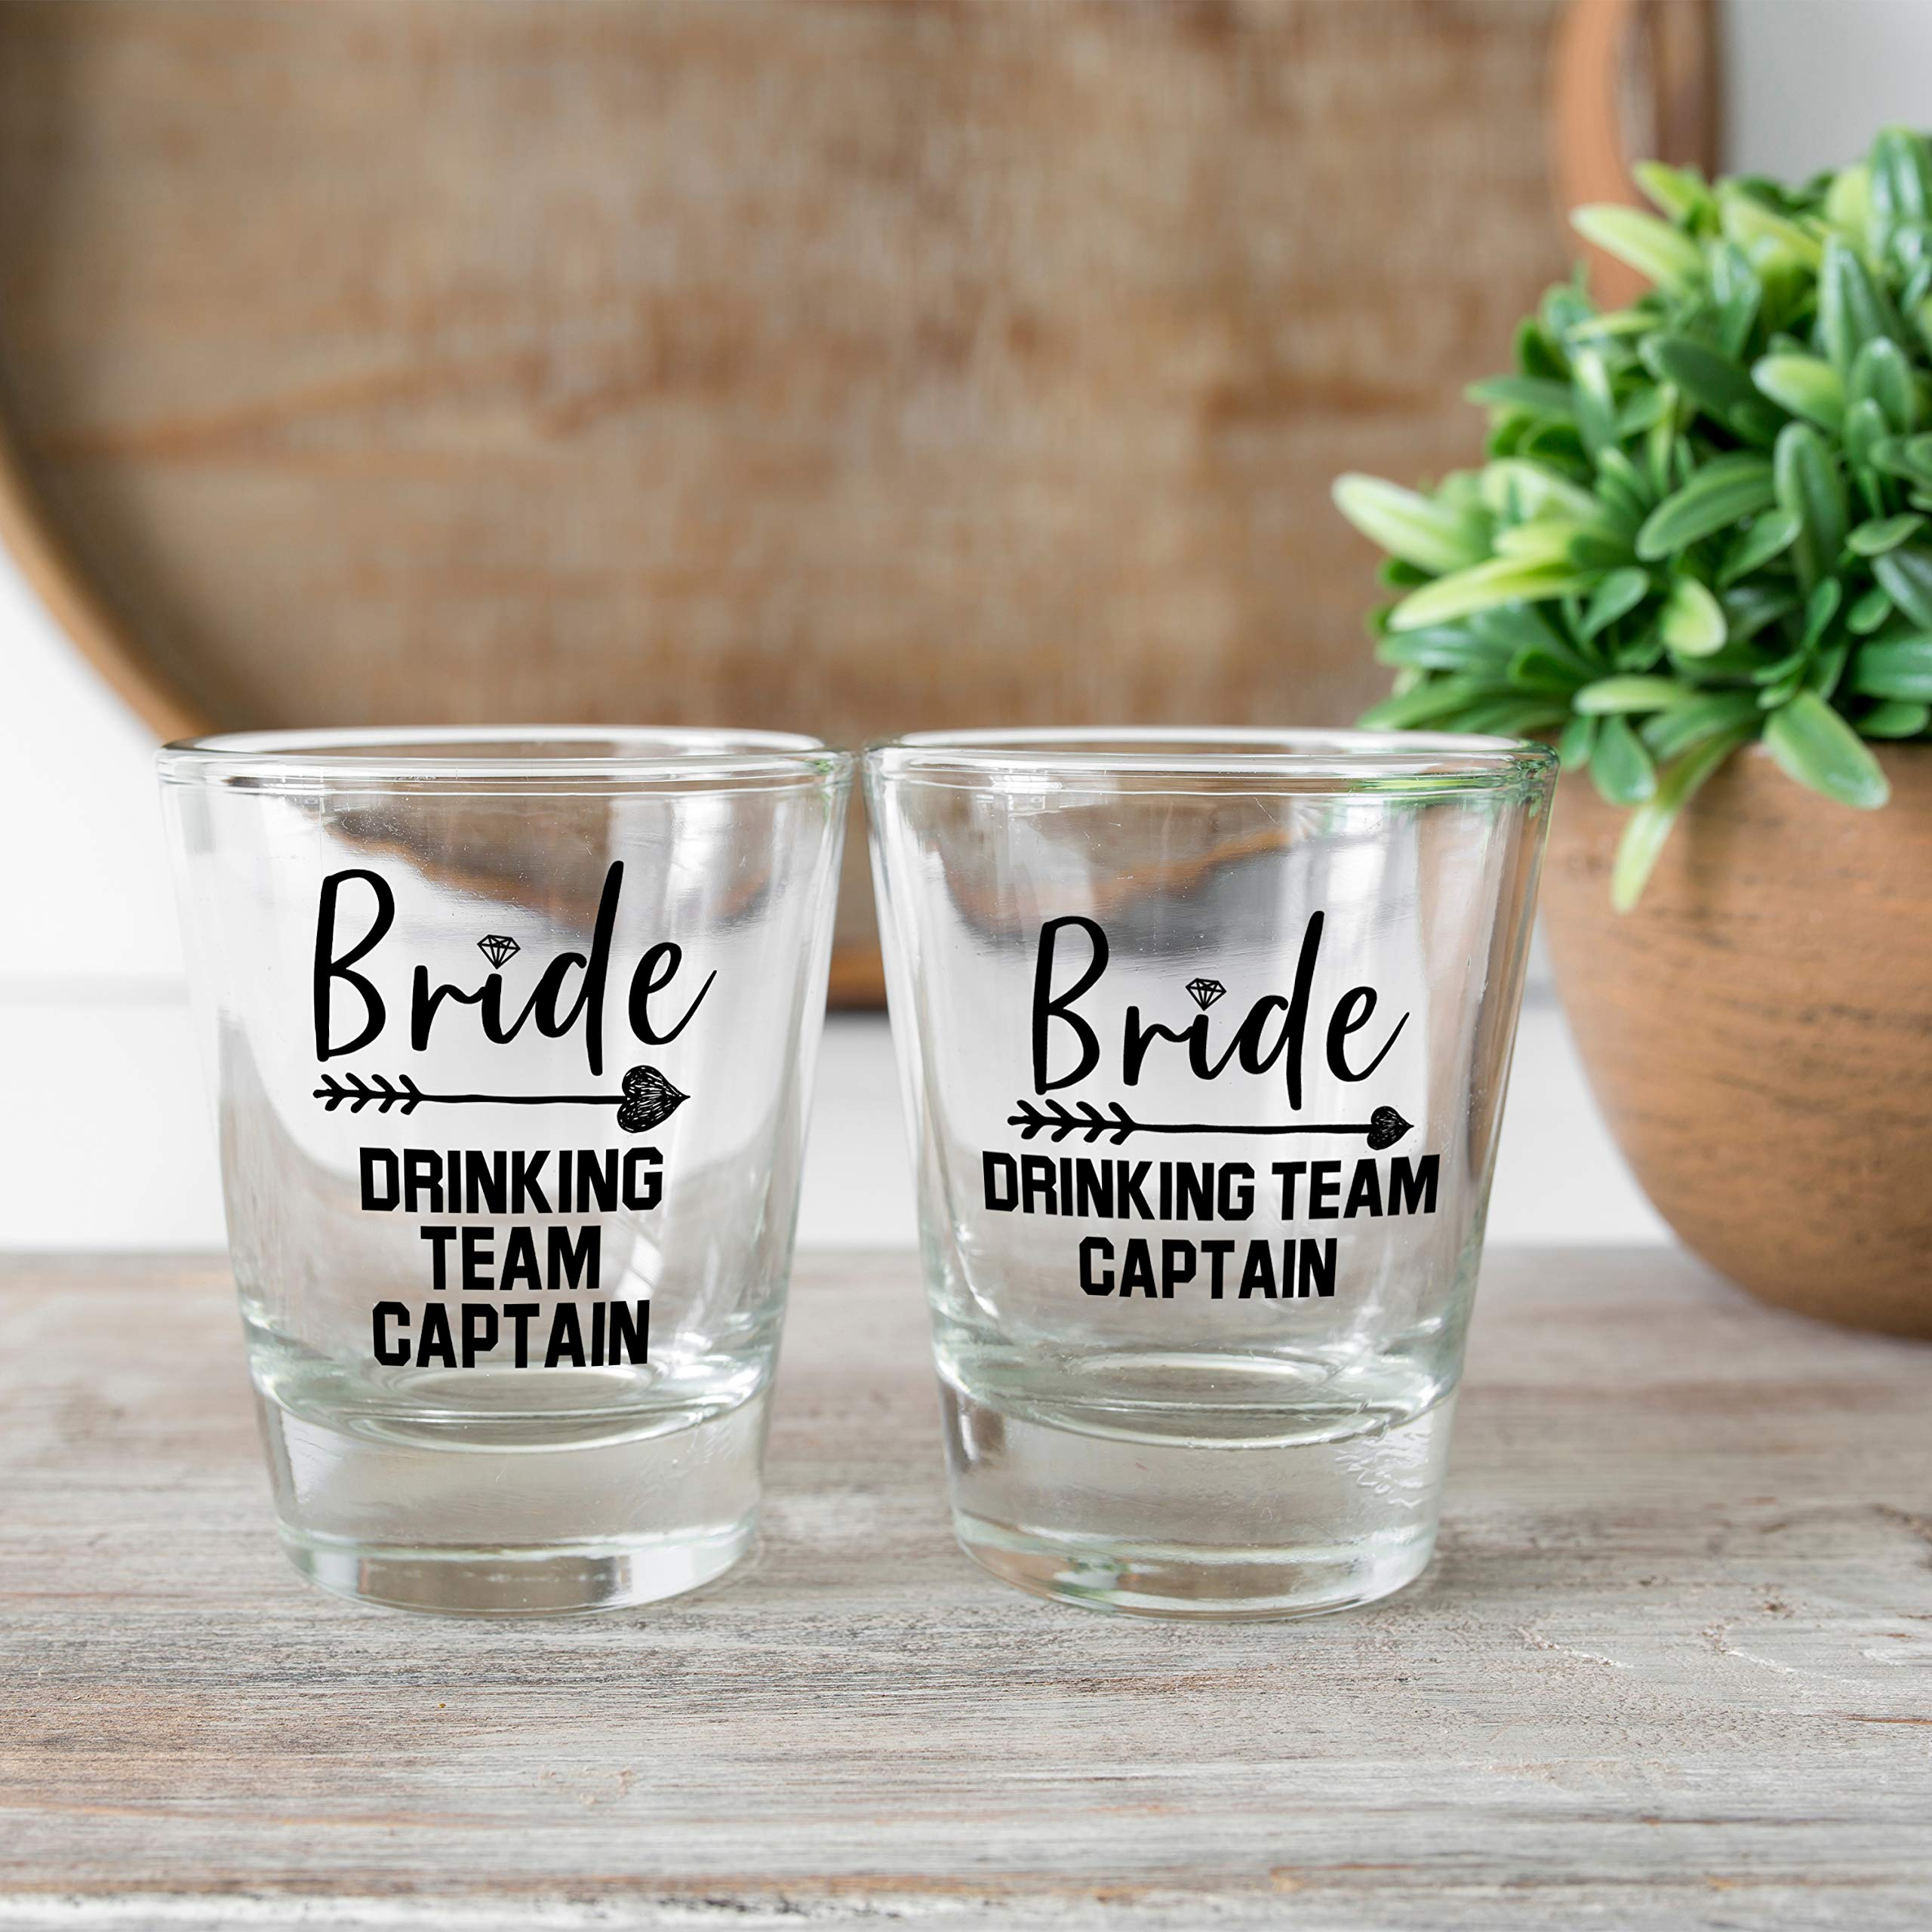 Bridesmaid Gifts Bride's Drinking Team Shot Glasses - Pack of 6 Bride's Drinking Team Member + 1 Bride's Drinking Team Captain - 1.5 oz - Bachelorette Party Favors by USA Custom Gifts (Image #2)